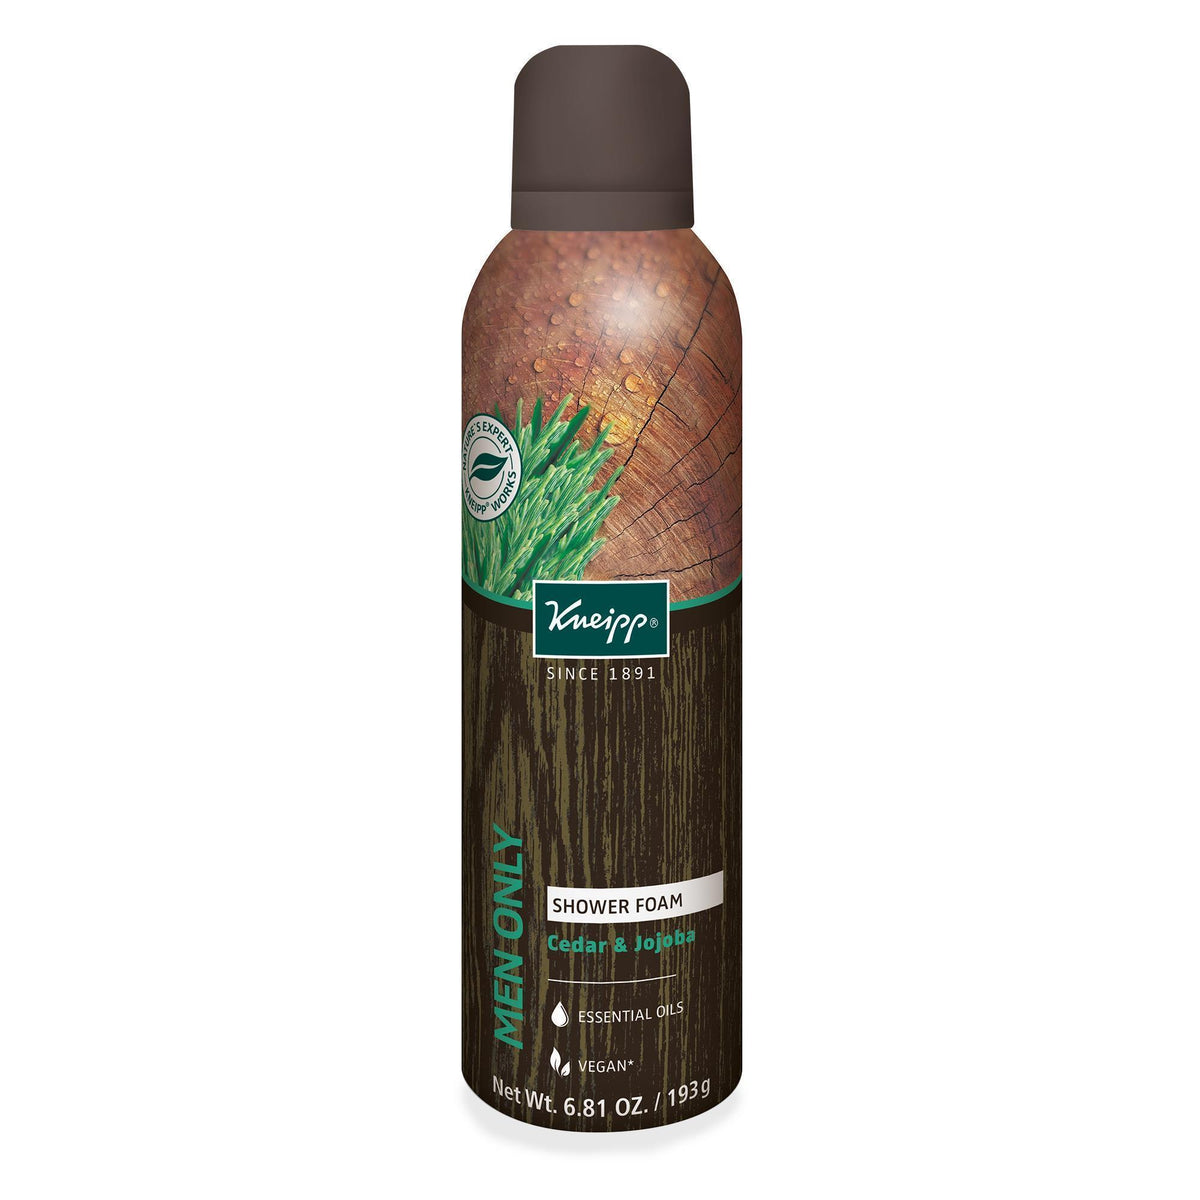 Kneipp Men Only Shower Foam 6.81 Oz.